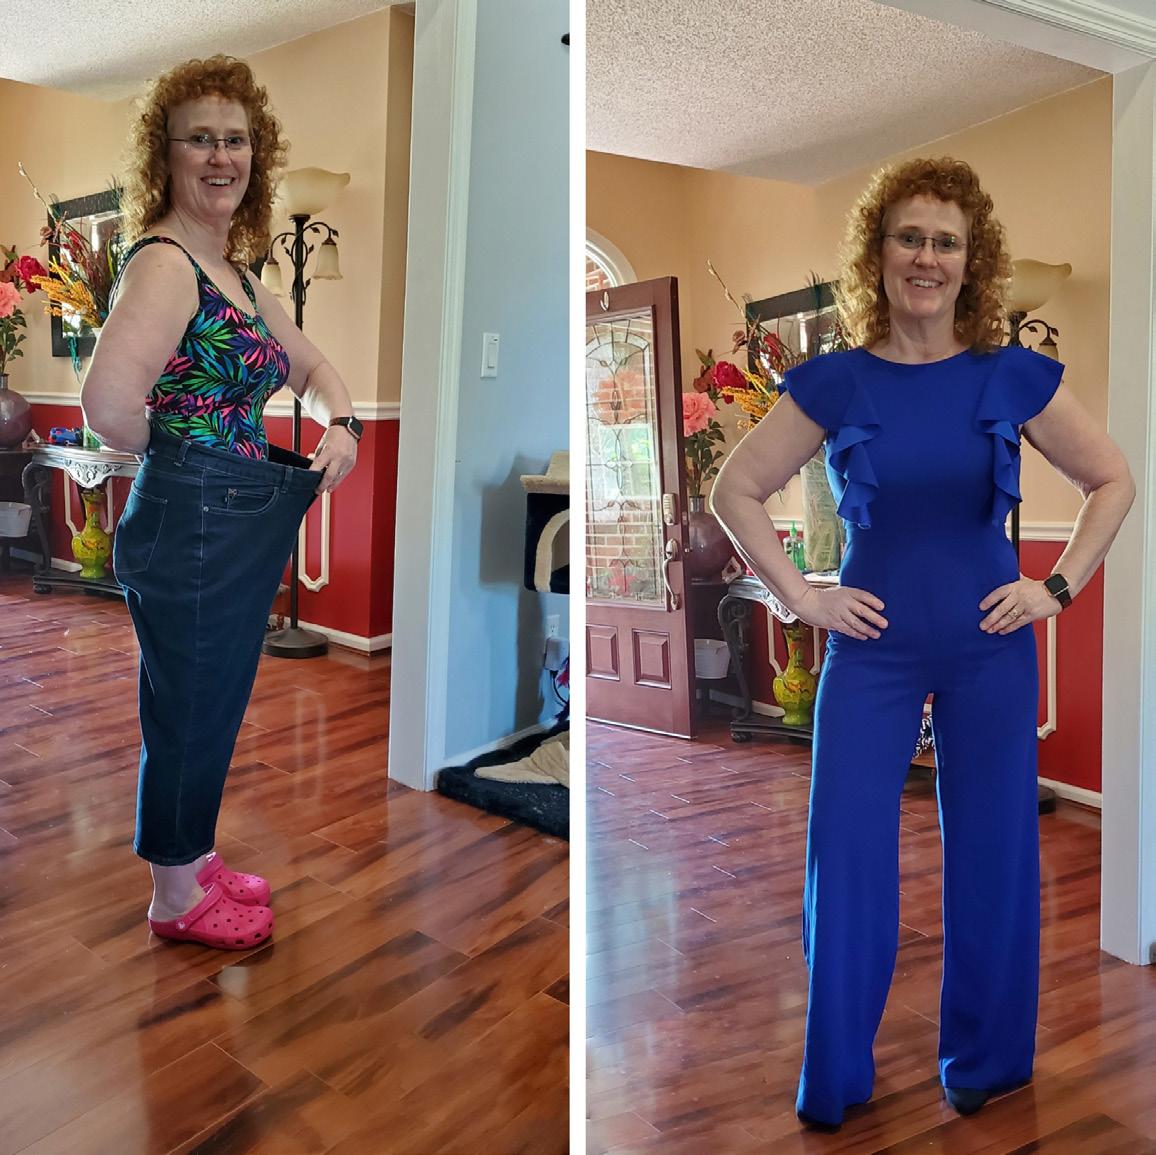 Lori N. after her weight loss surgery.